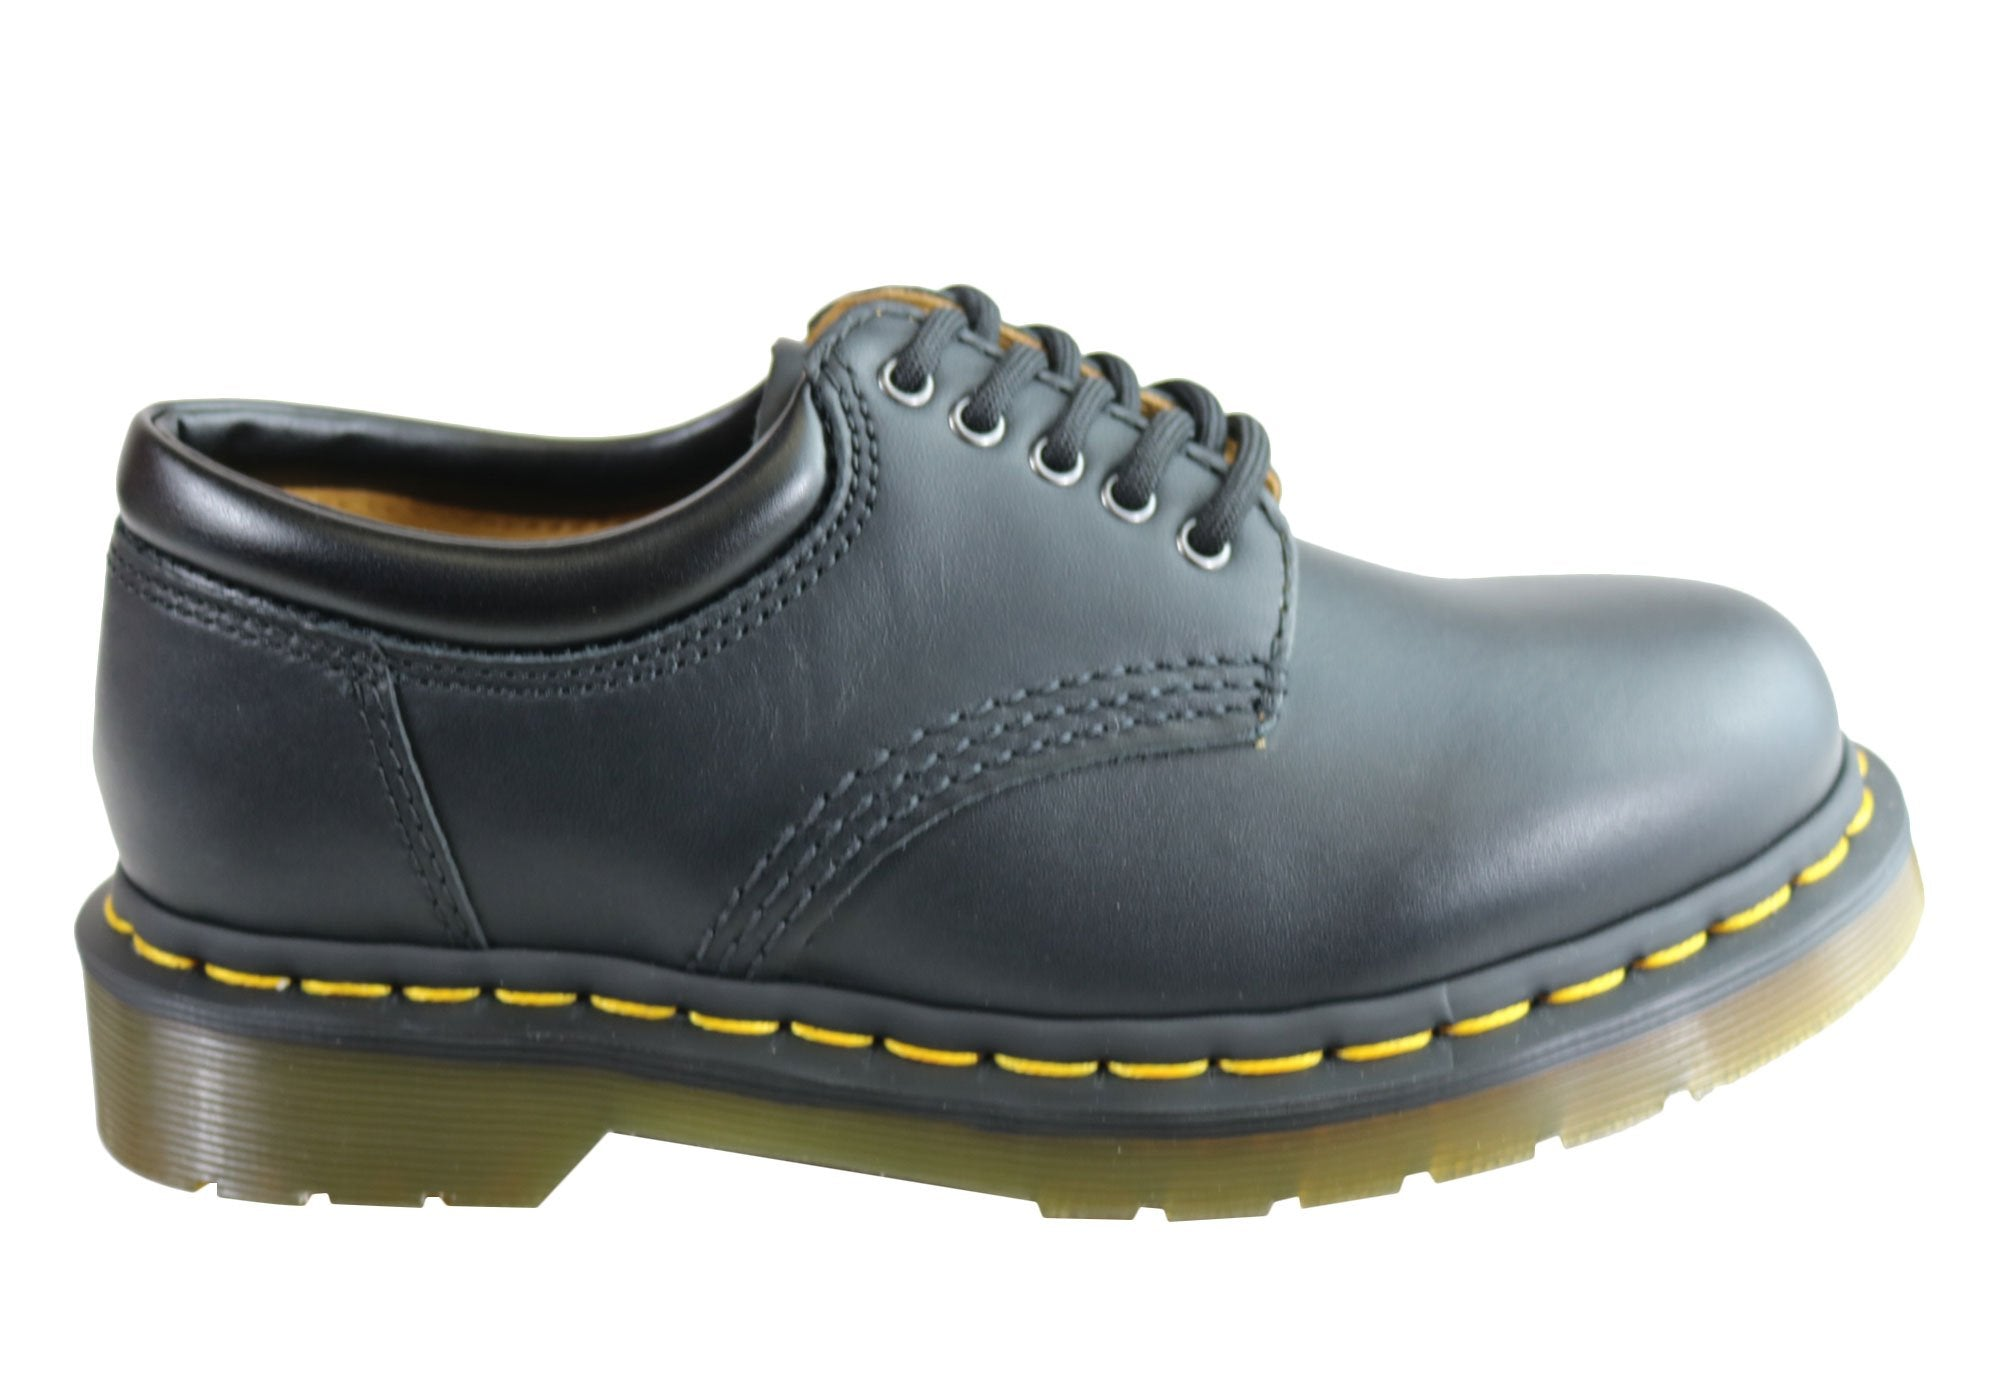 NEW DR MARTENS 1460 BLACK NAPPA FASHION LACE UP COMFORTABLE UNISEX BOOTS